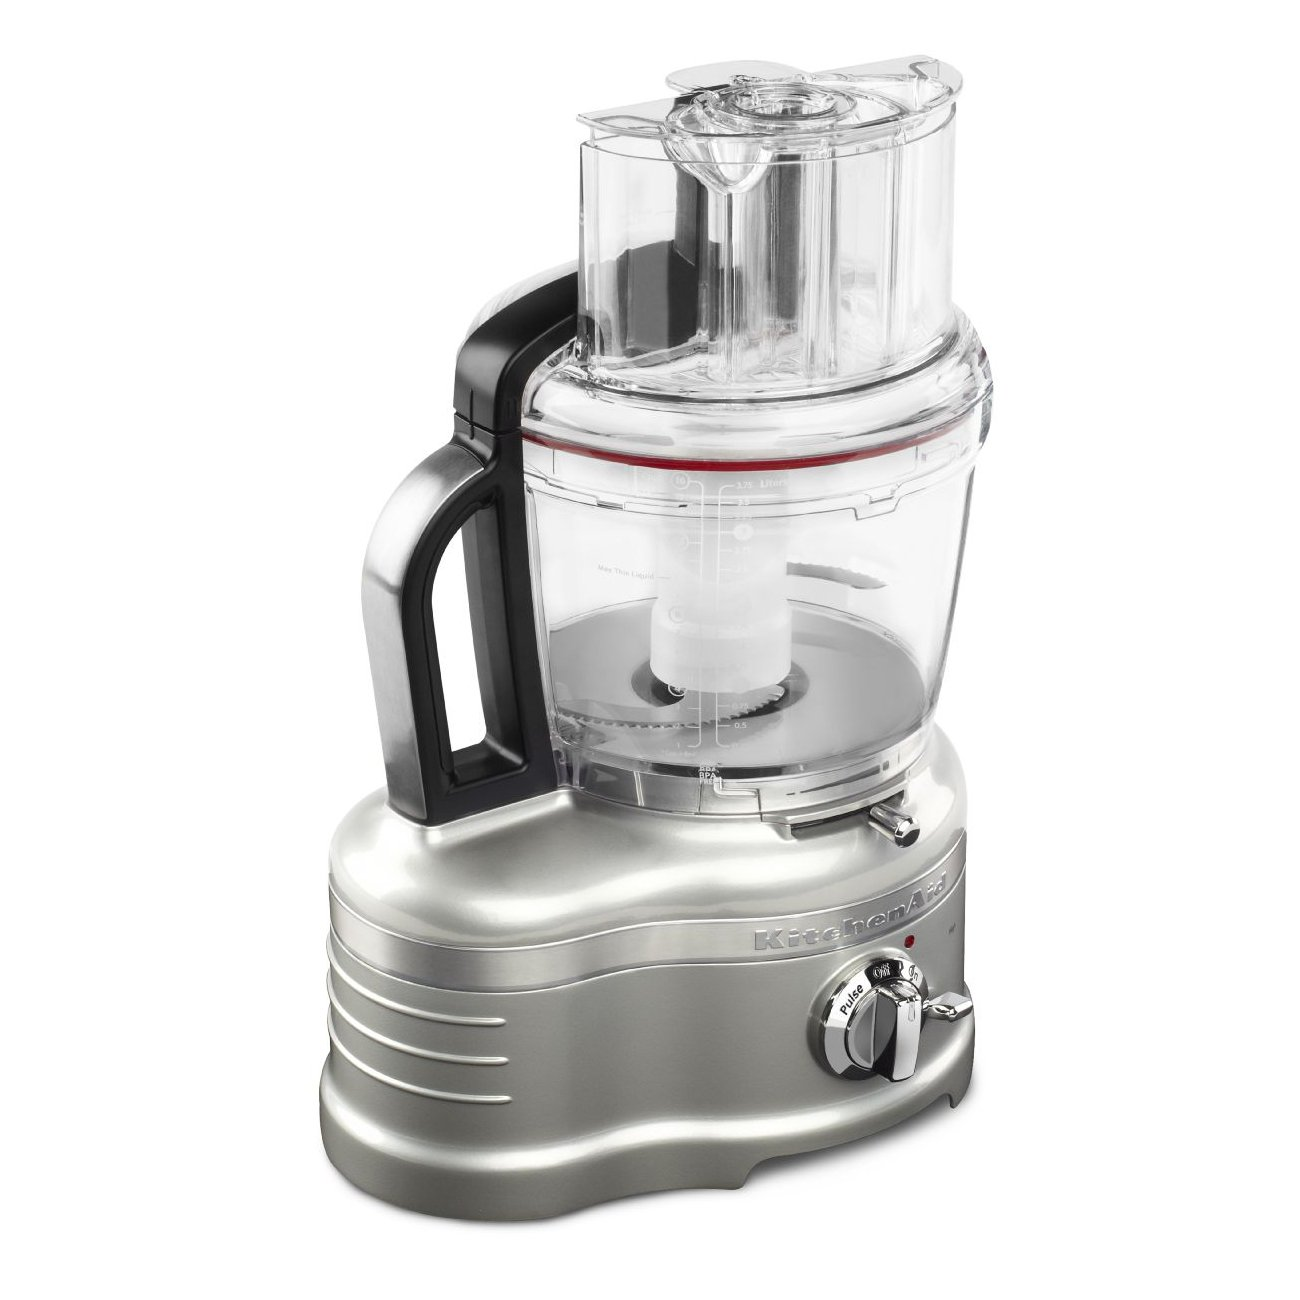 KitchenAid Pro Line Food Processor Sugar Pearl Silver KFP1642SR